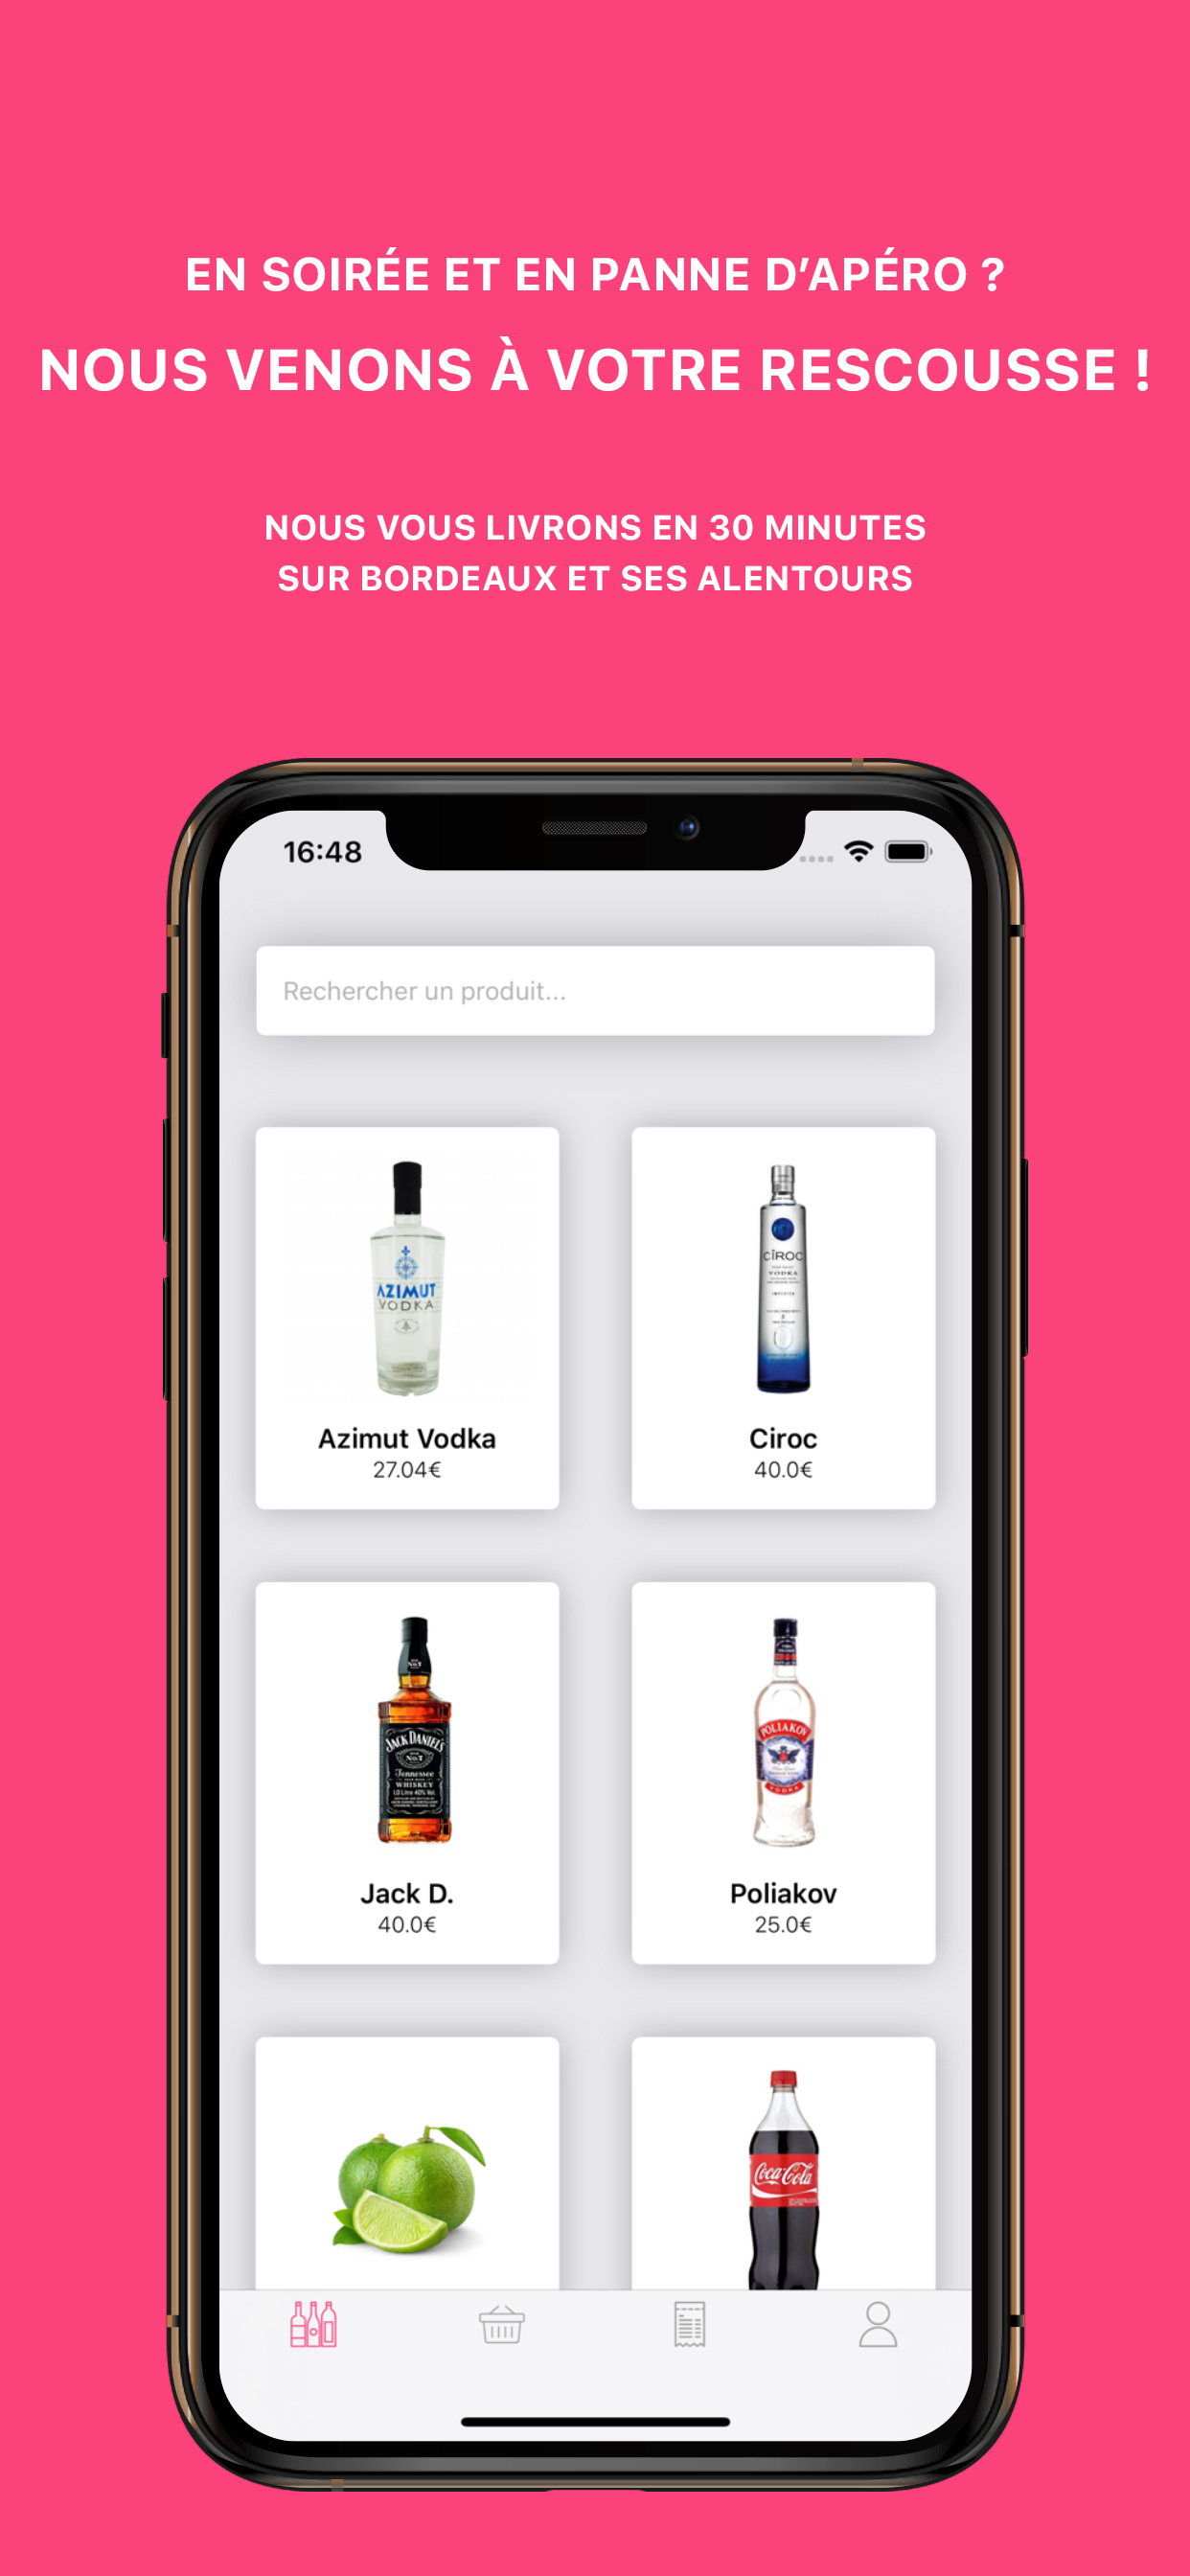 fresh-apero-application-ios-iphone-bordeaux-freelance-jeremy-peltier-1